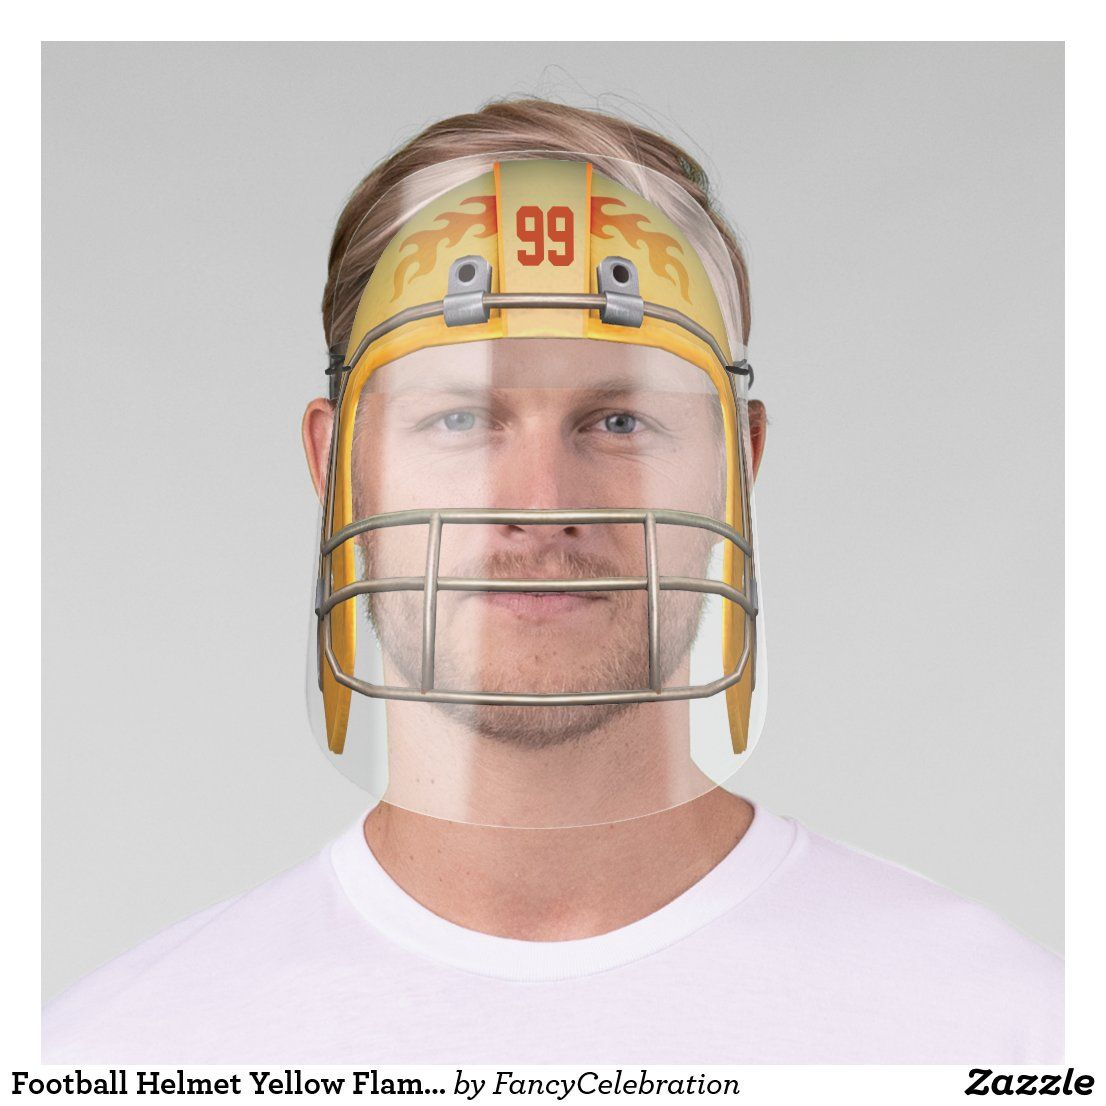 Football helmet yellow flames with custom number face